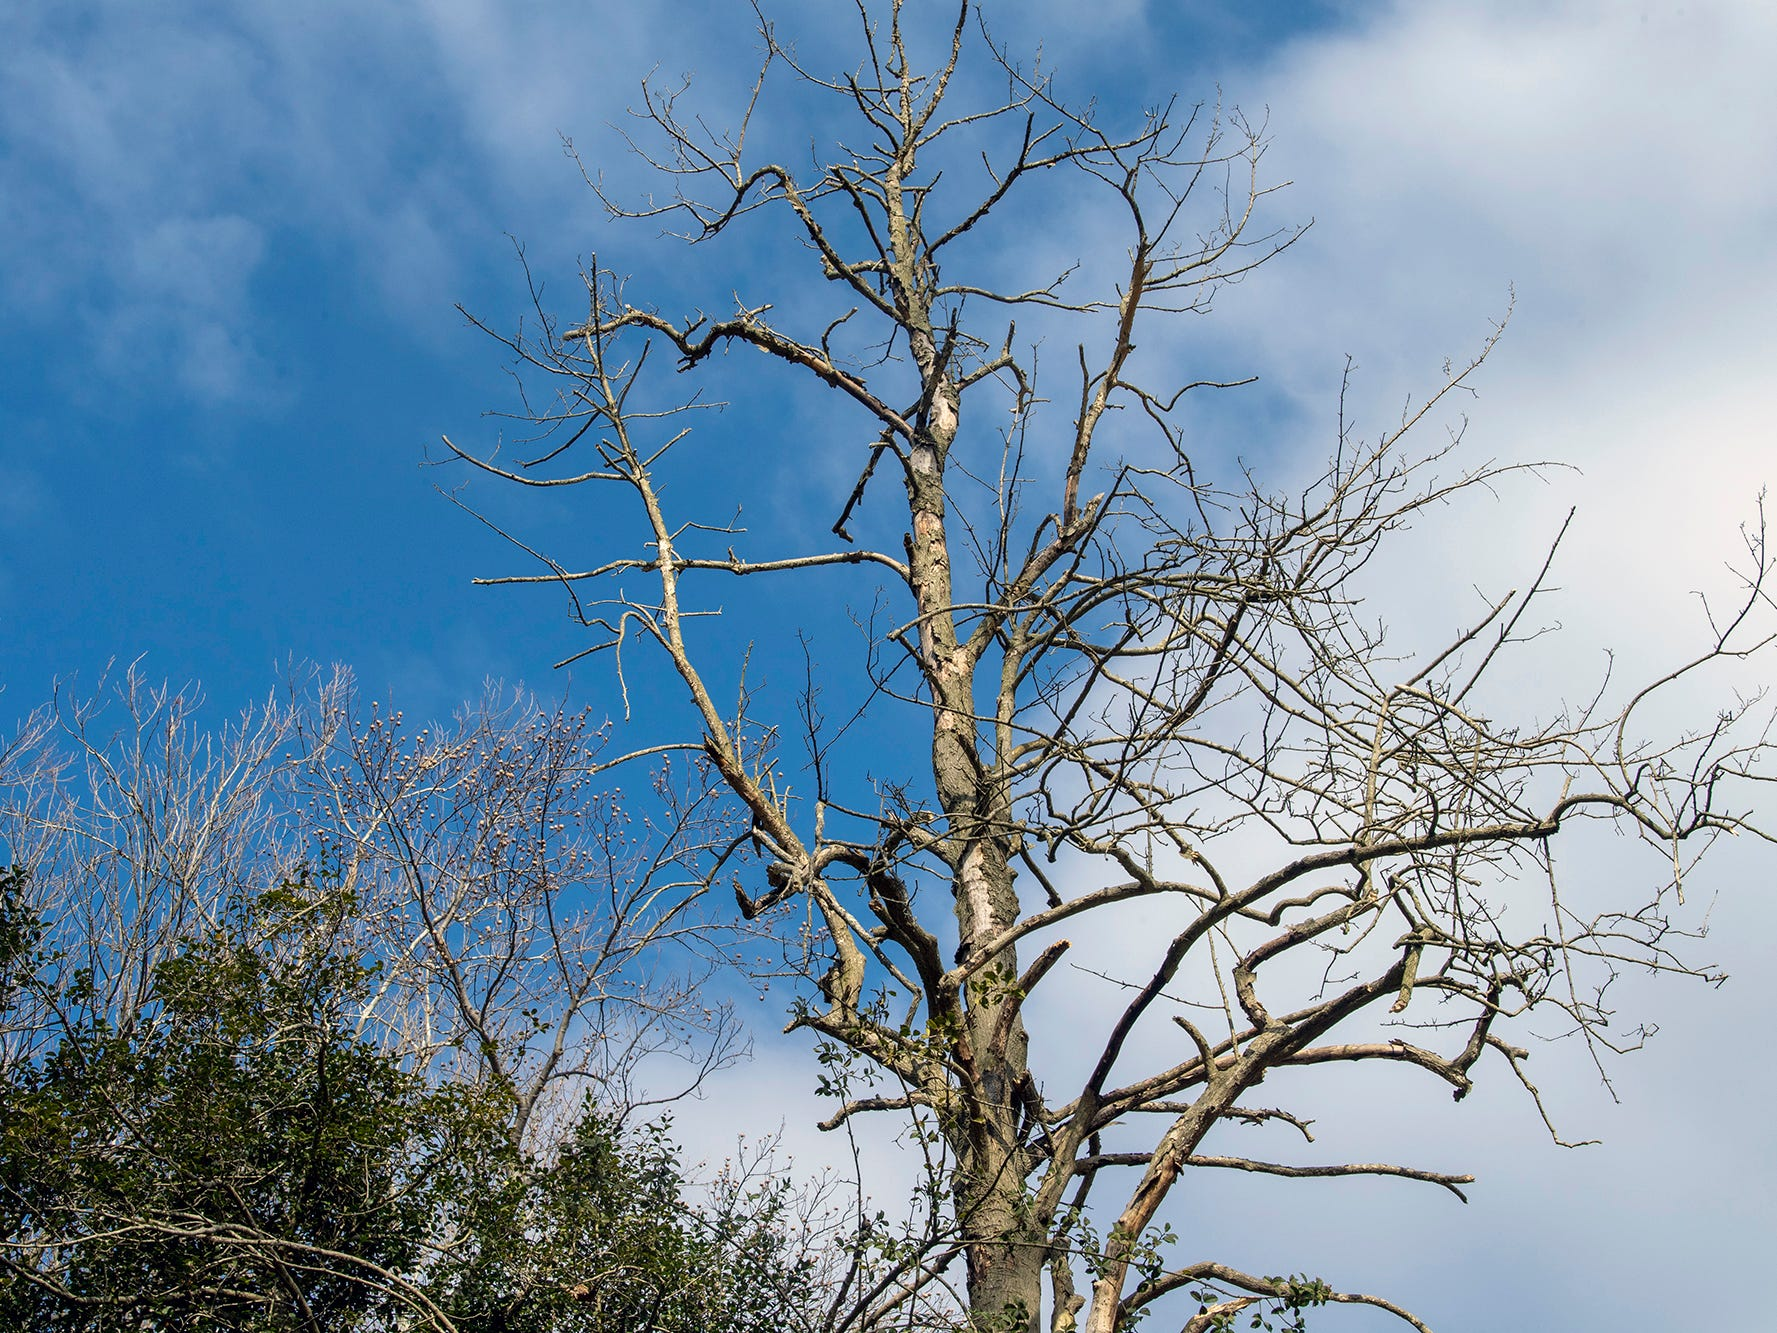 Part of the American Holly tree is dead. Certified arborist Scott Wade said that the tree could live on for many years, sprouting new shoots. The American holly tree, believed to be 350 years old, is part of the Indian Steps Museum along the Susquehanna River in Lower Chanceford Township.